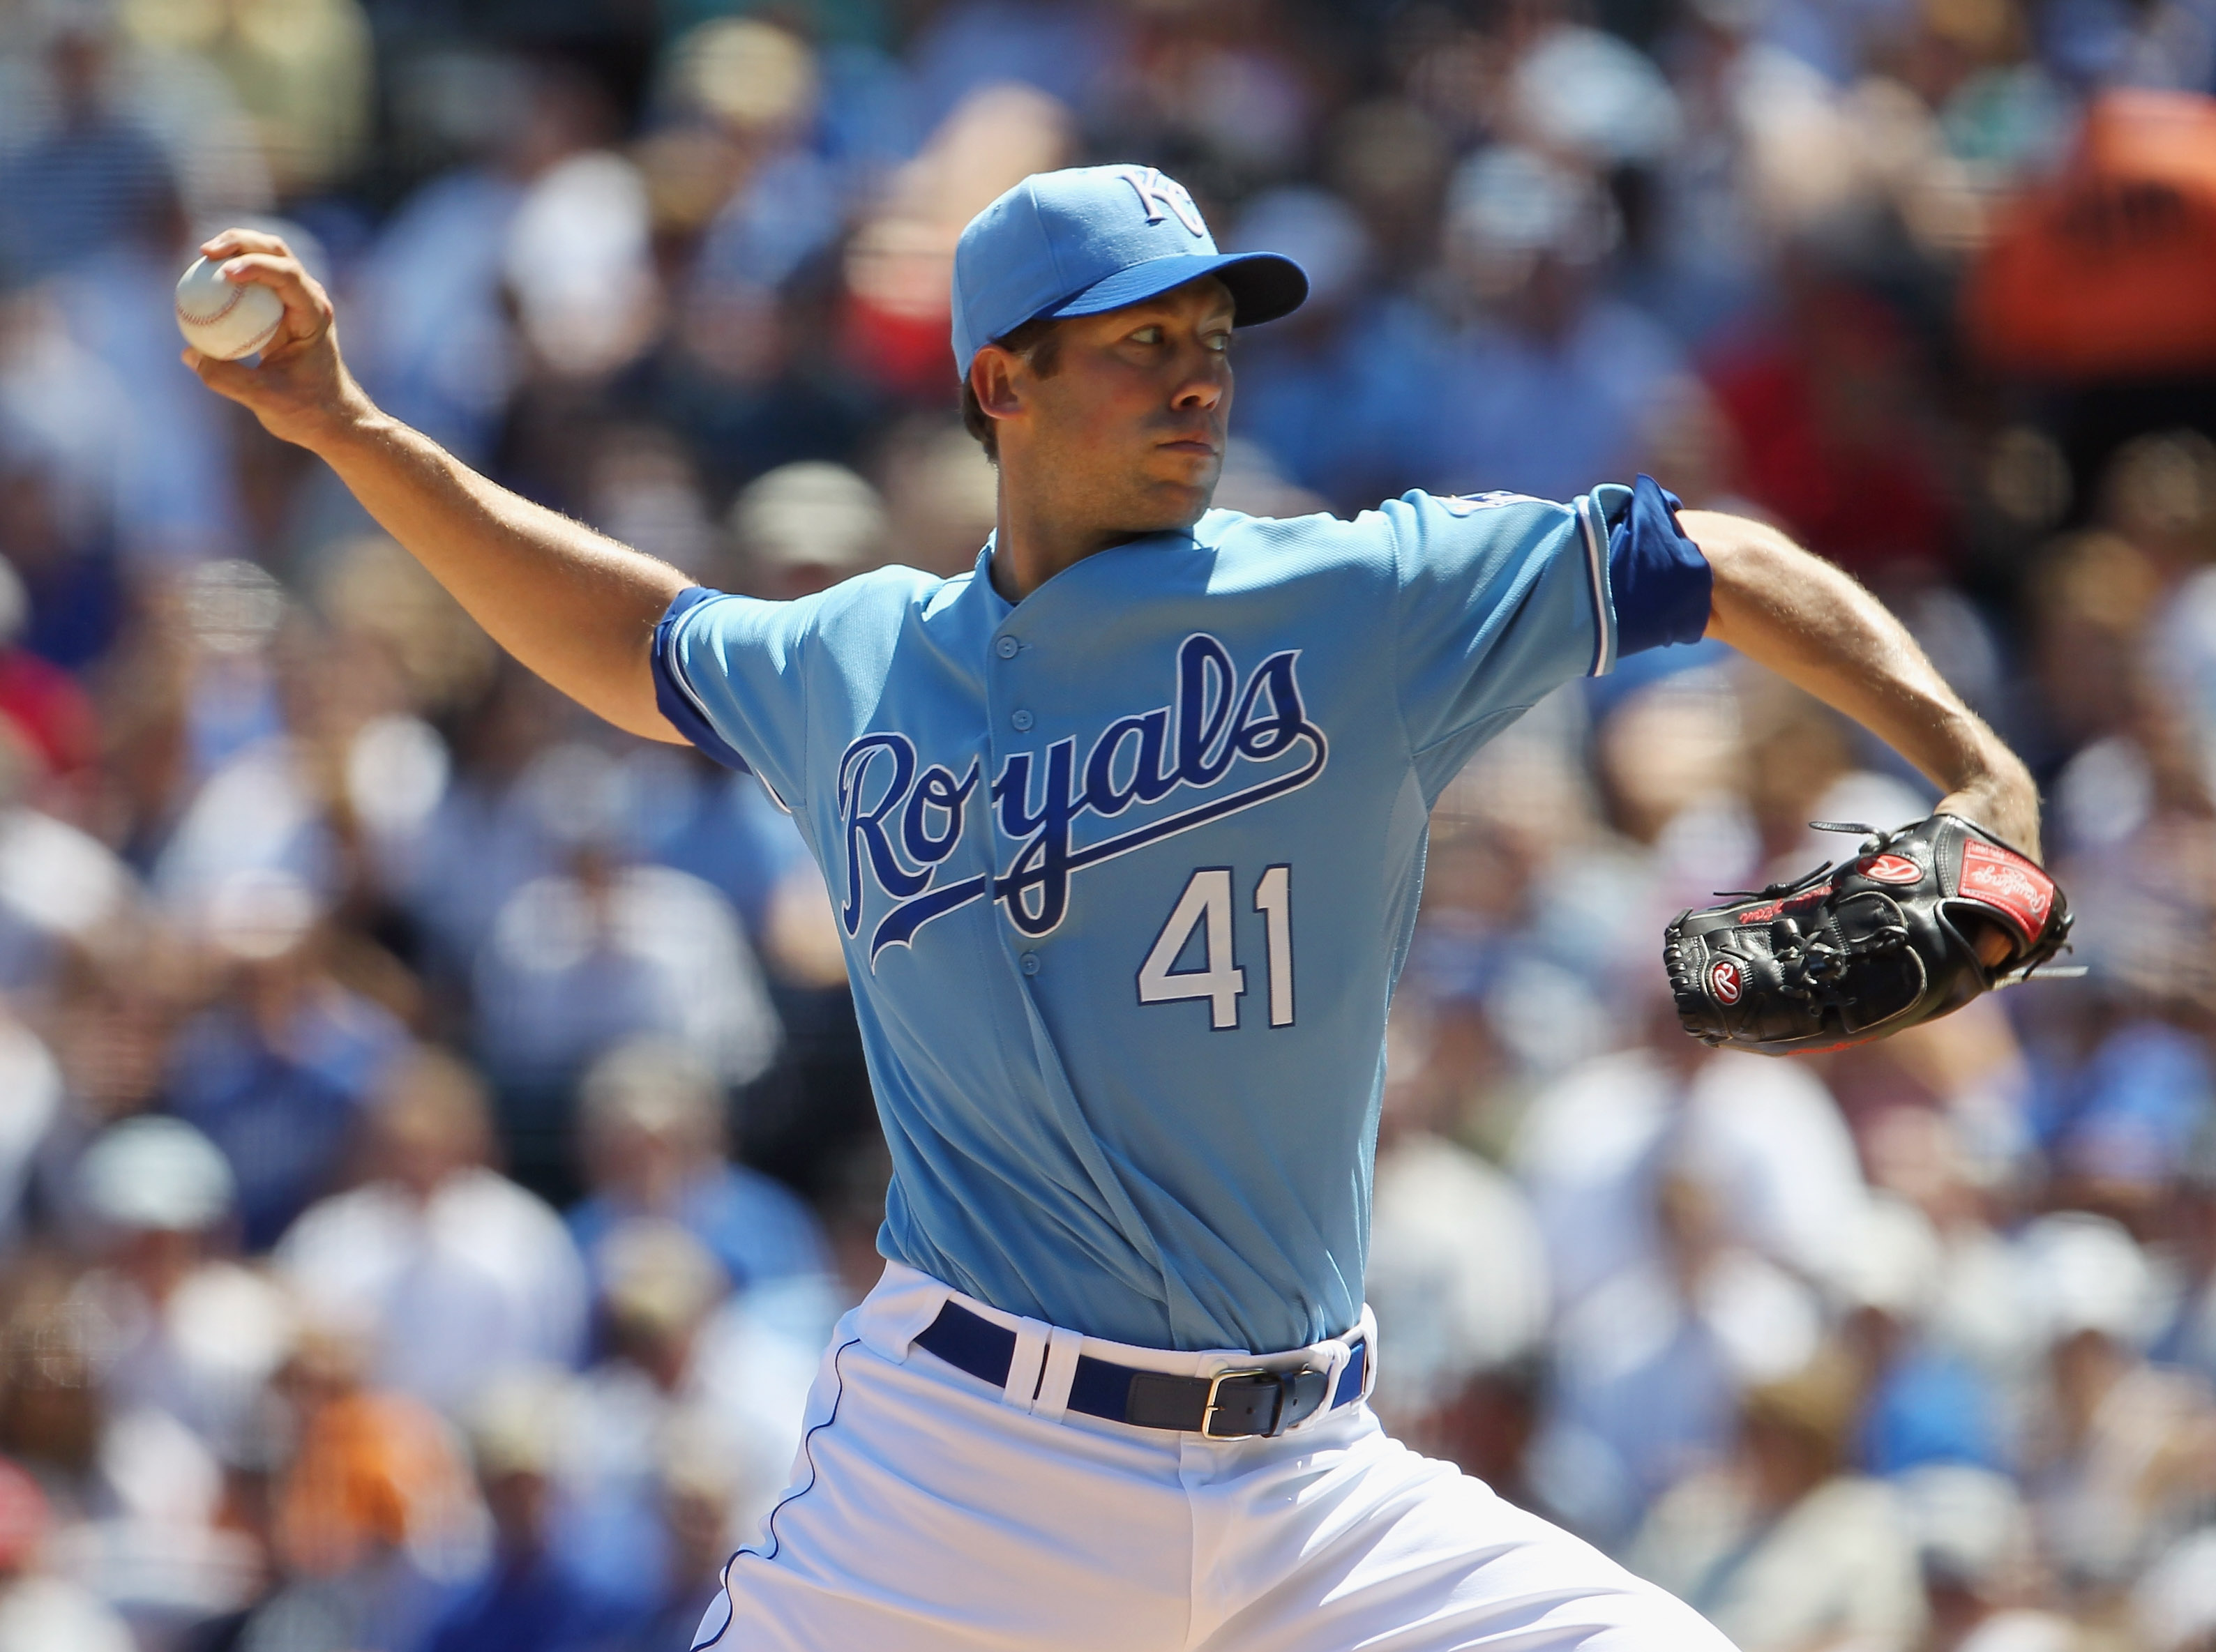 KANSAS CITY, MO - AUGUST 15:  Pitcher Bryan Bullington #41 of the Kansas City Royals in action during the game against the New York Yankees on August 15, 2010 at Kauffman stadium in Kansas City, Missouri.  (Photo by Jamie Squire/Getty Images)